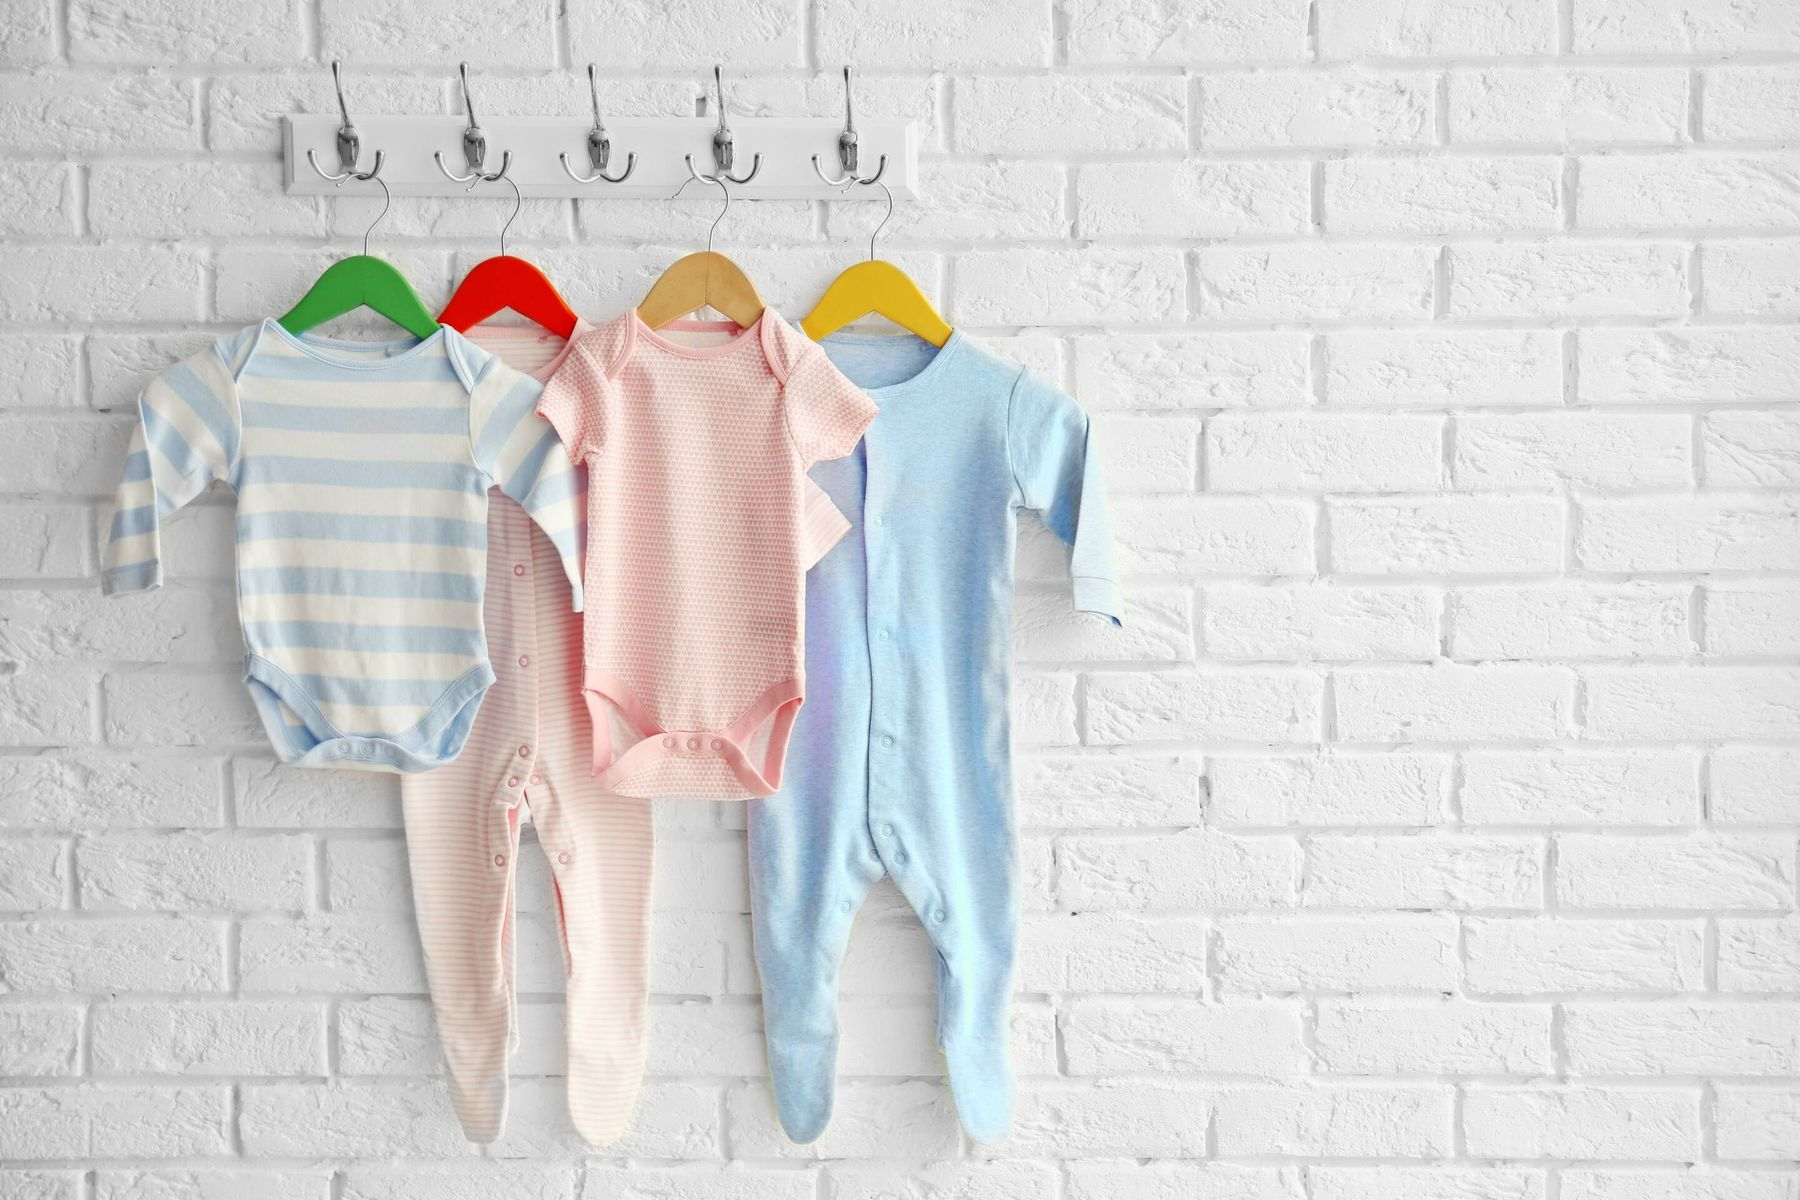 baby clothes hanging up